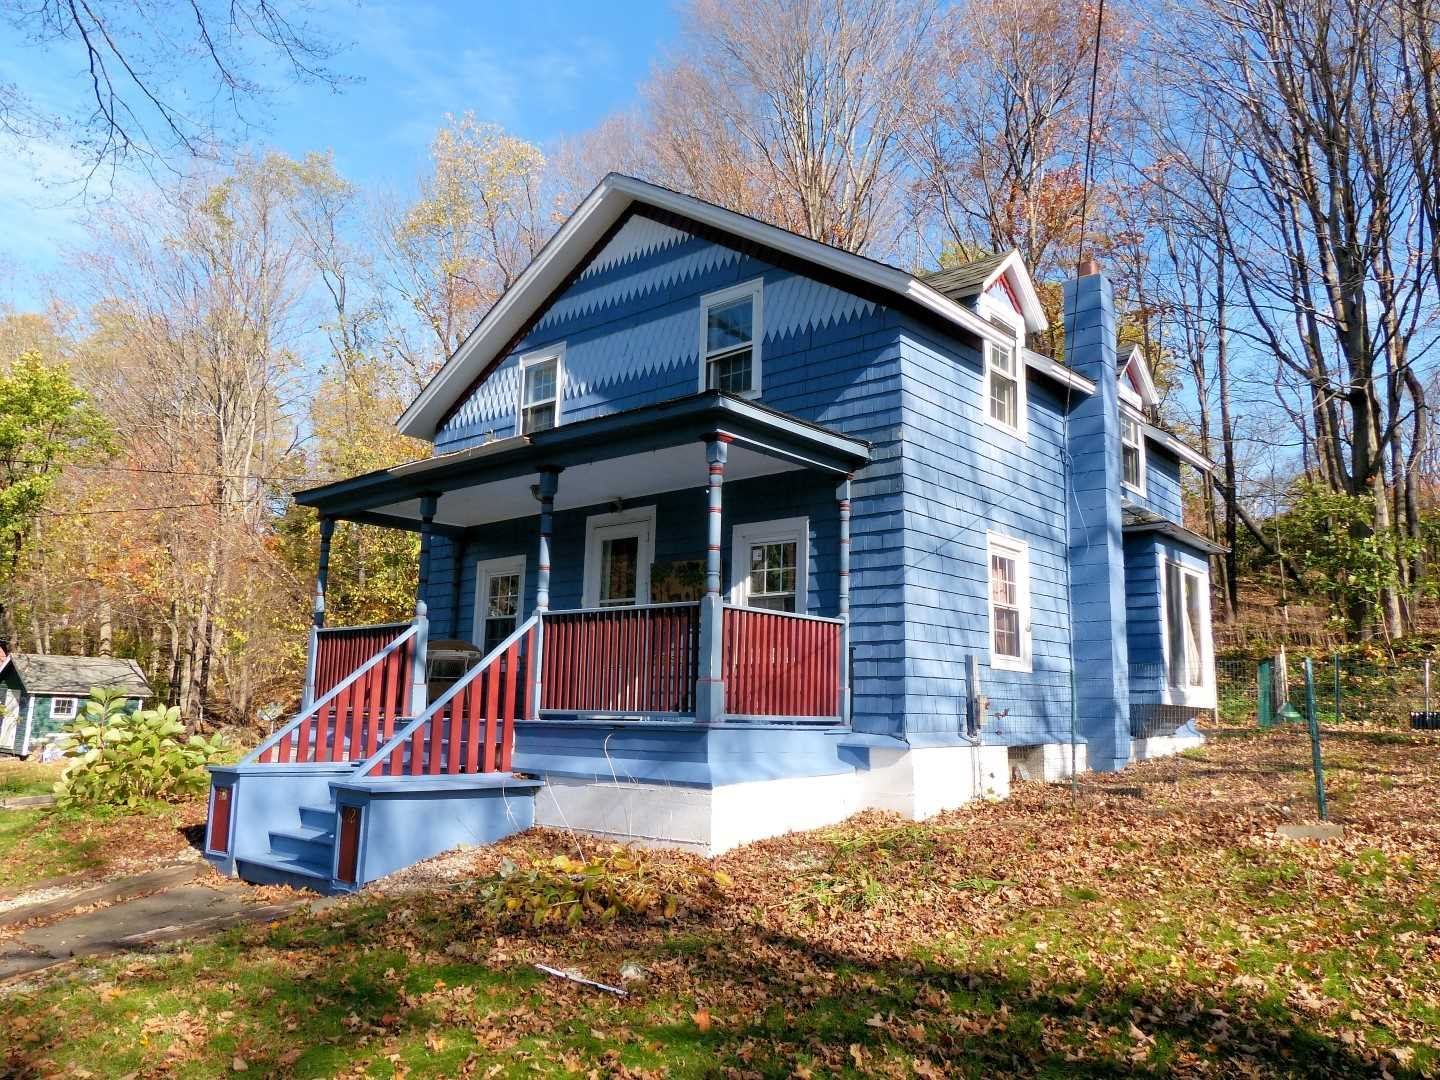 Single Family Home for Sale at 52 CENTER Street 52 CENTER Street Millerton, New York 12546 United States